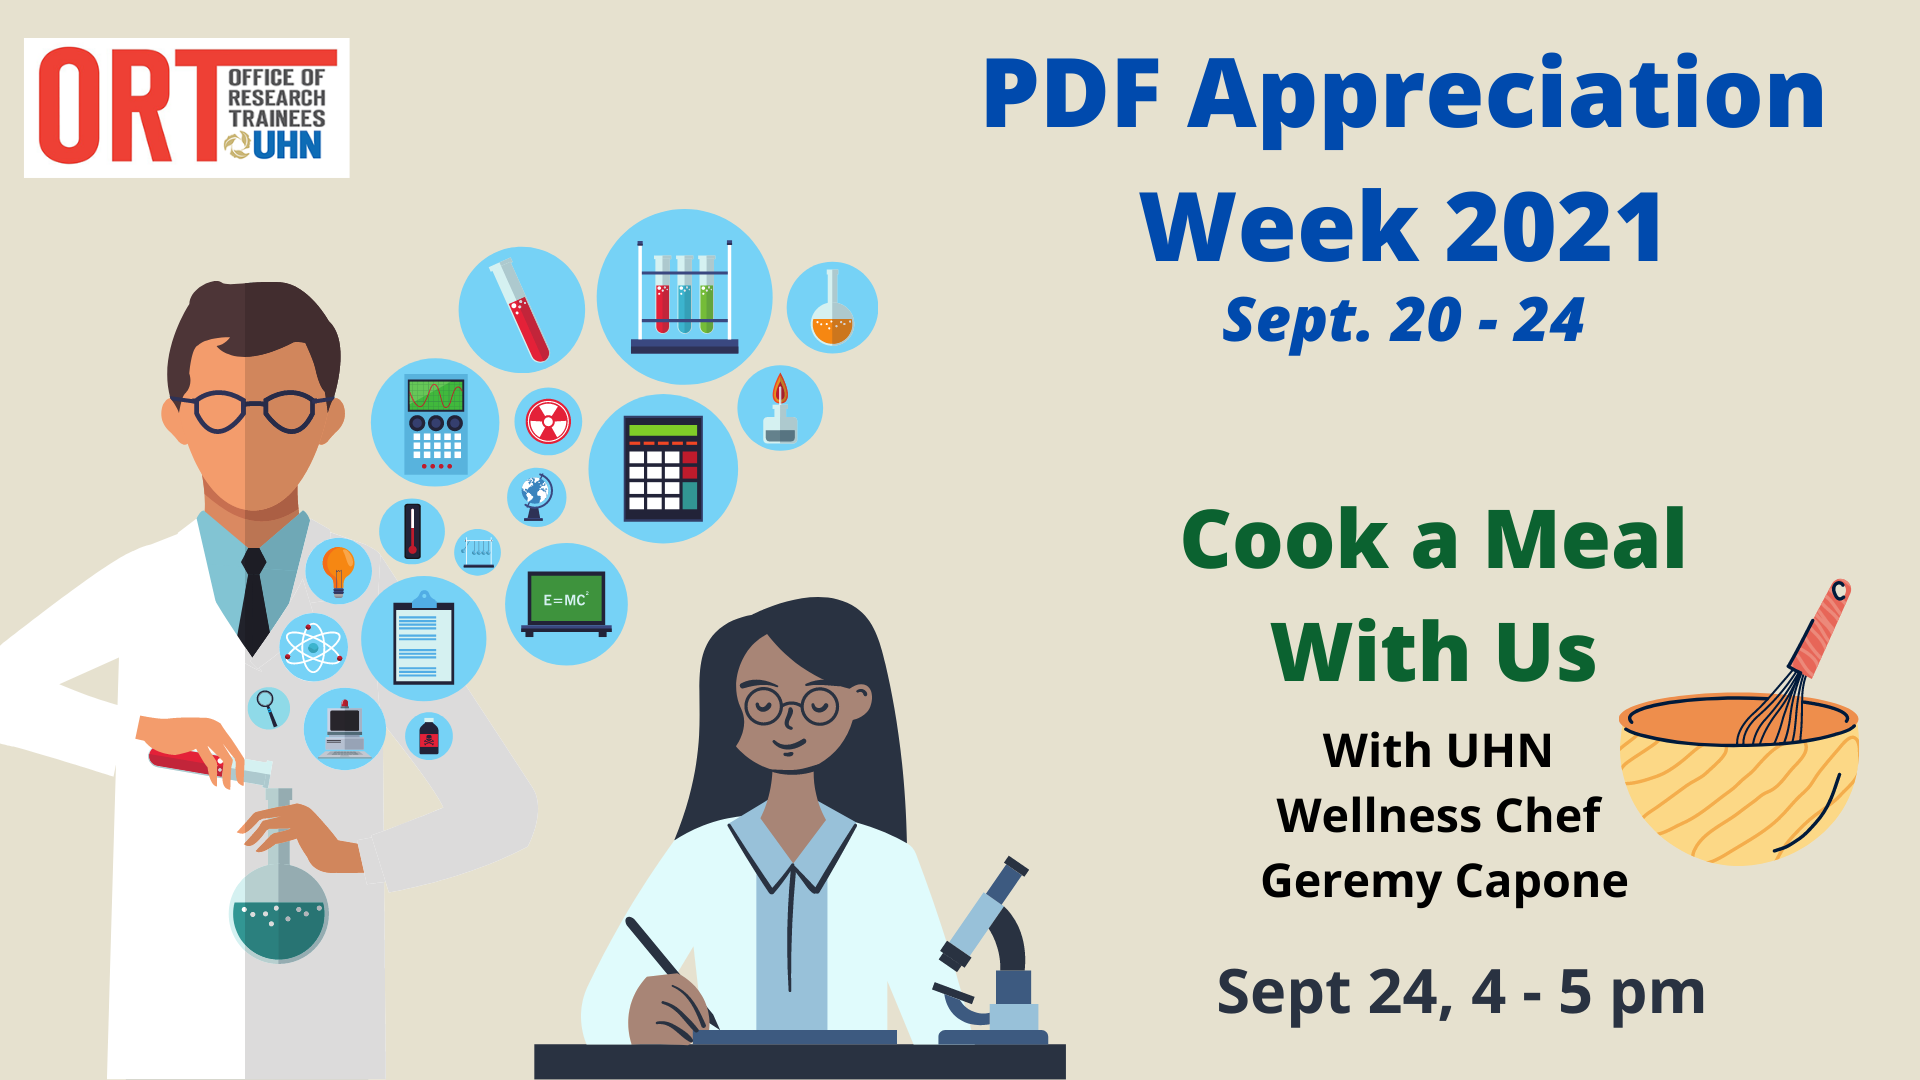 Poster for PDF Appreciation Week 2021. September 20-24. The poster is beige with an image of two scientists, one with a microscope writing on a piece of paper and another with different blue bubbles of science objects coming out of the flask. Poster reads Cook a Meal With Us with UHN Wellness Cook Geremy Capone. September 24, 4-5 pm.